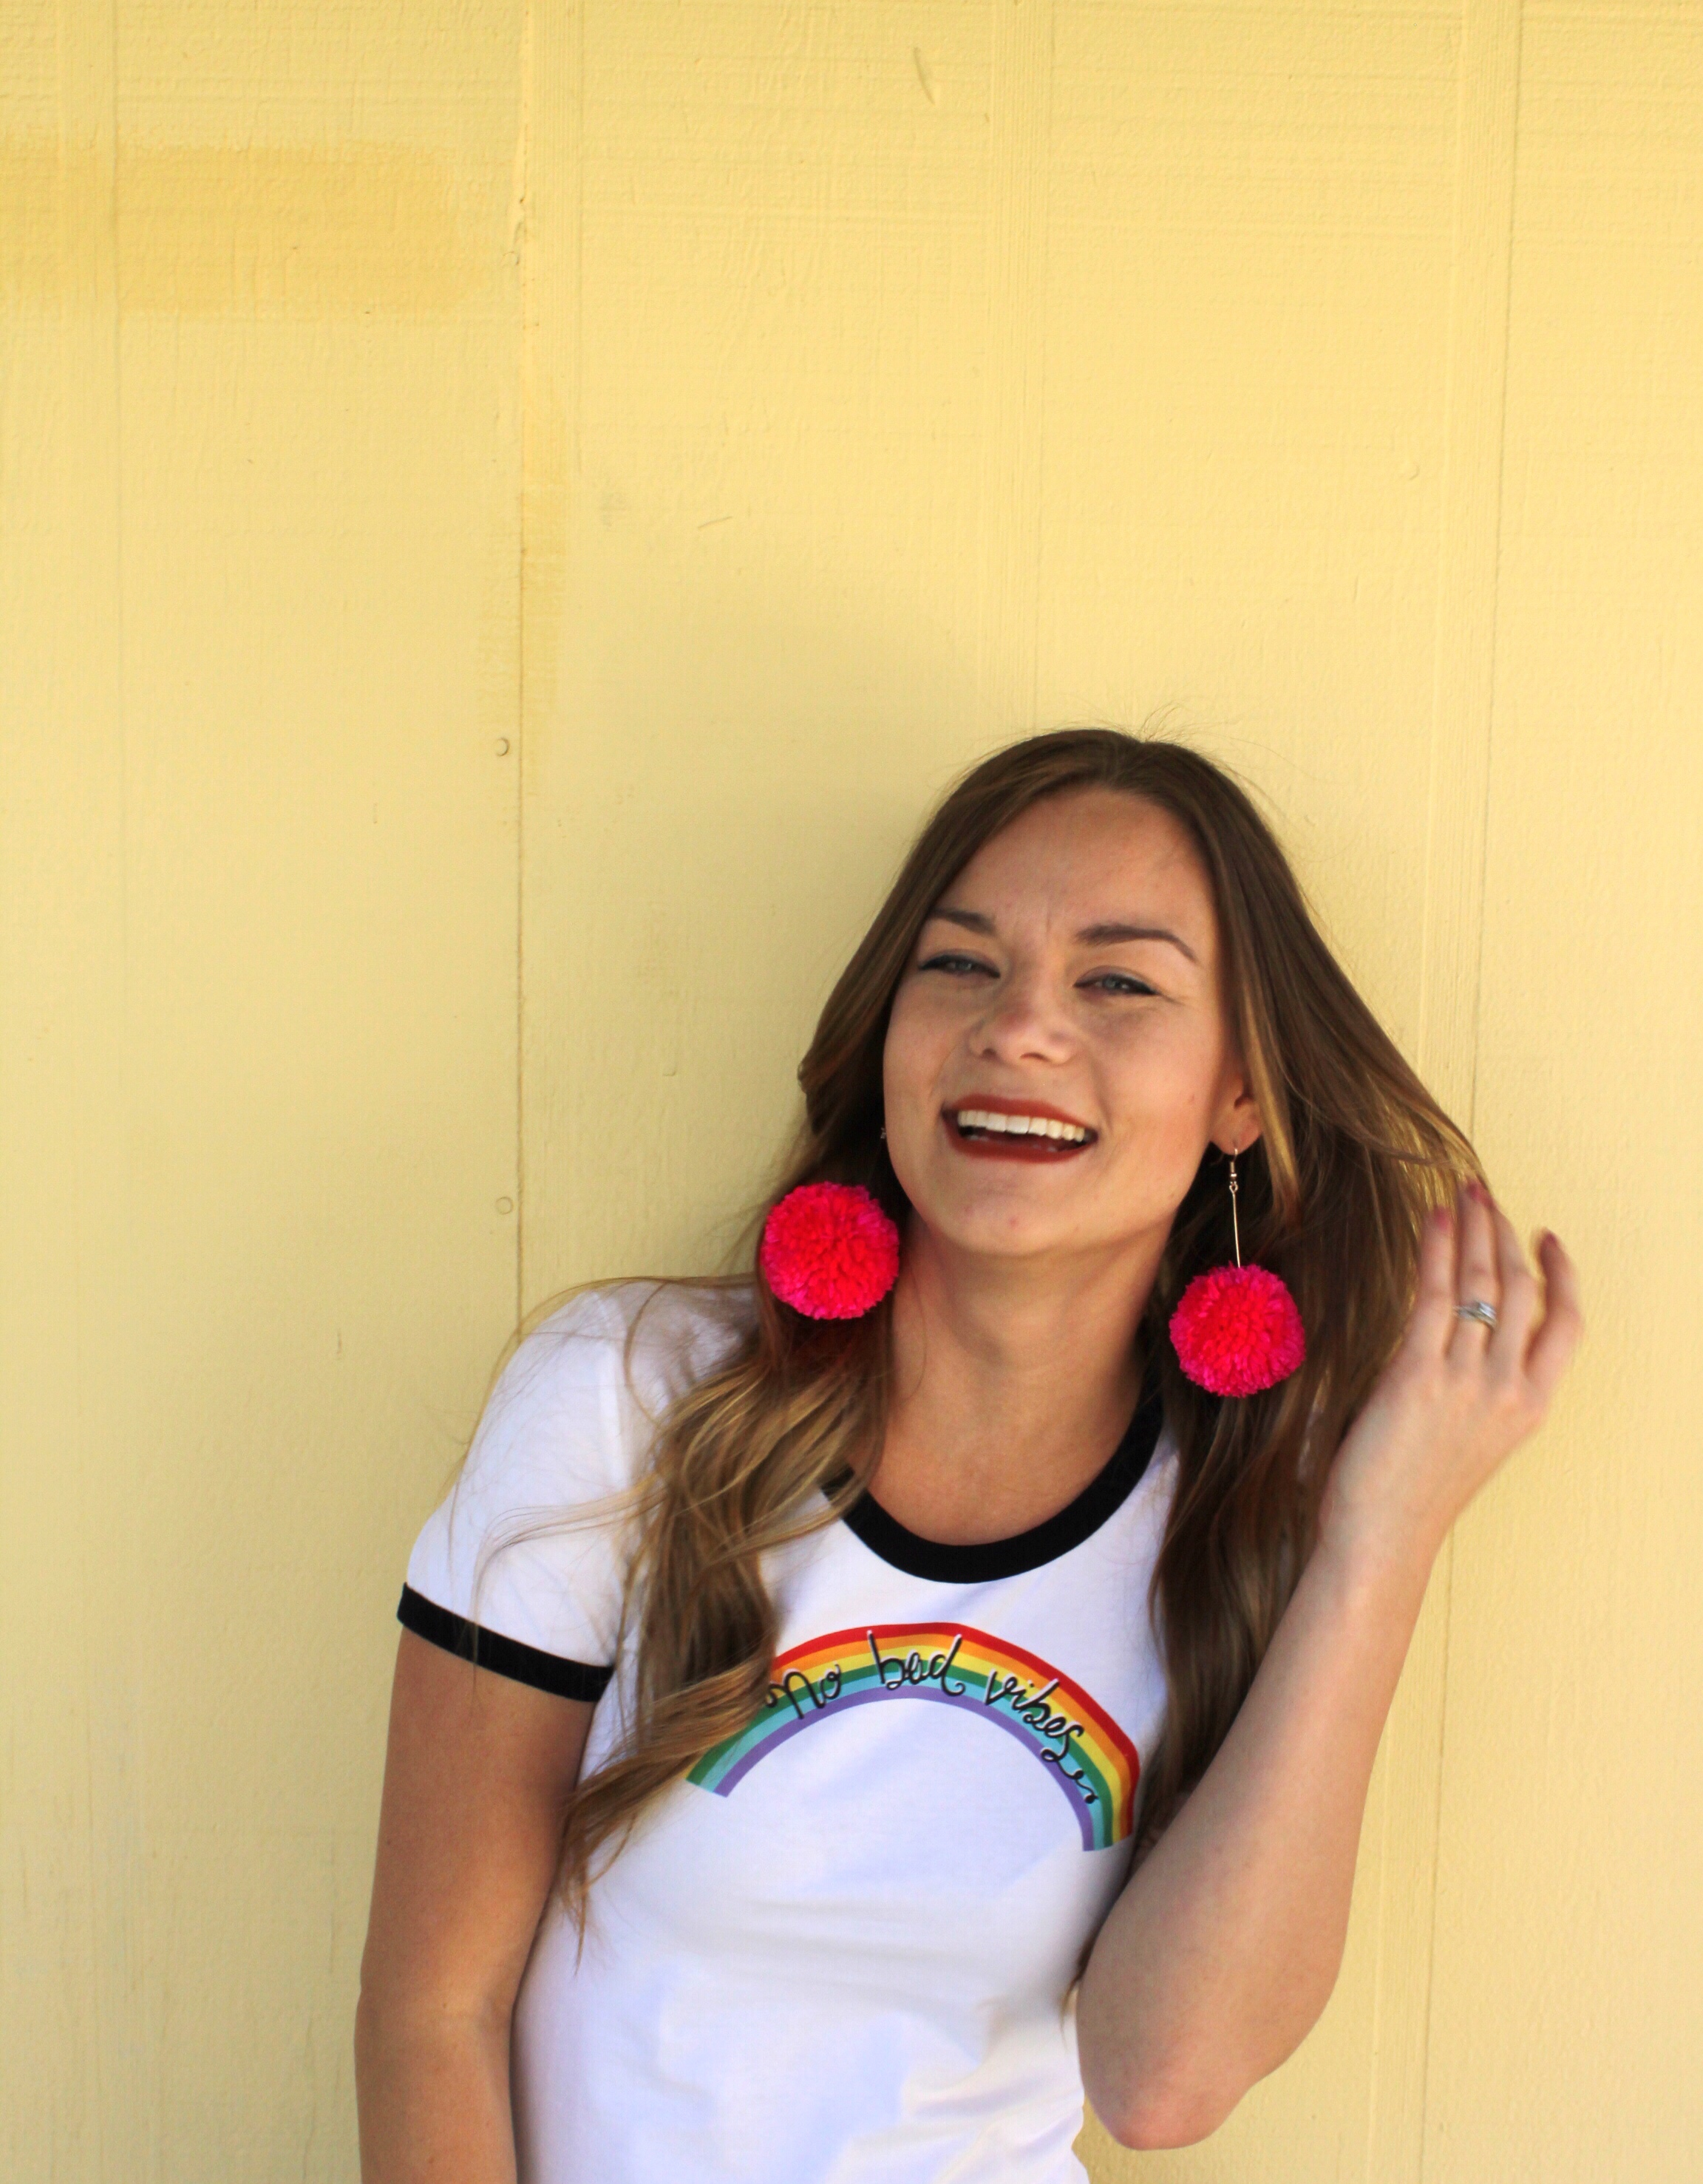 Hot Pink Pom Pom Earrings and No Bad Vibes Rainbow 70's Style Ringer Tee